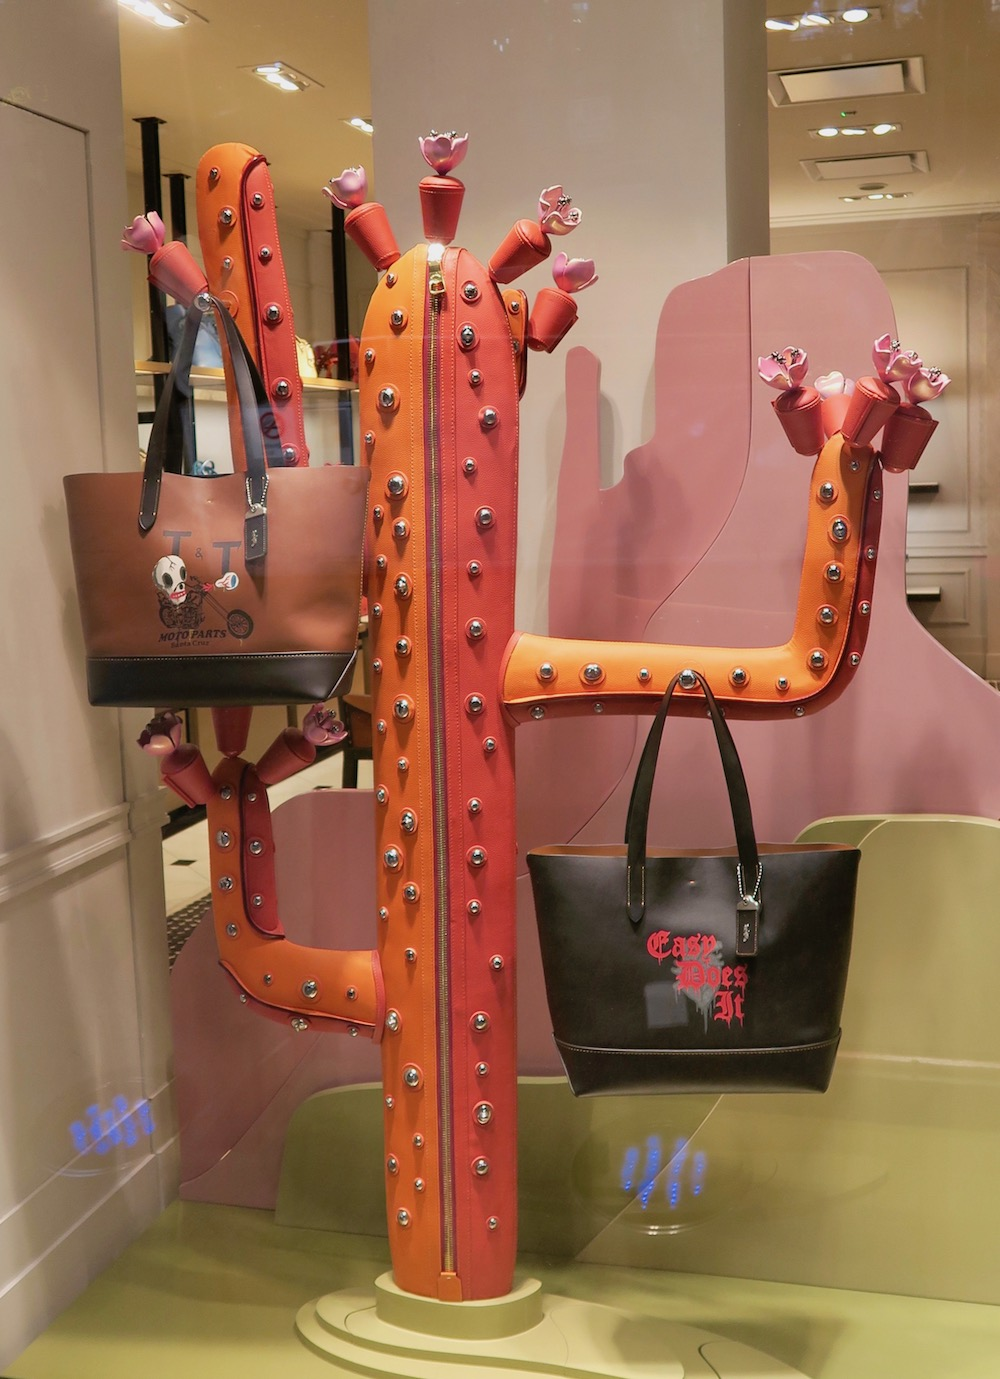 Leather cacti in window display in Singapore |curlytraveller.com